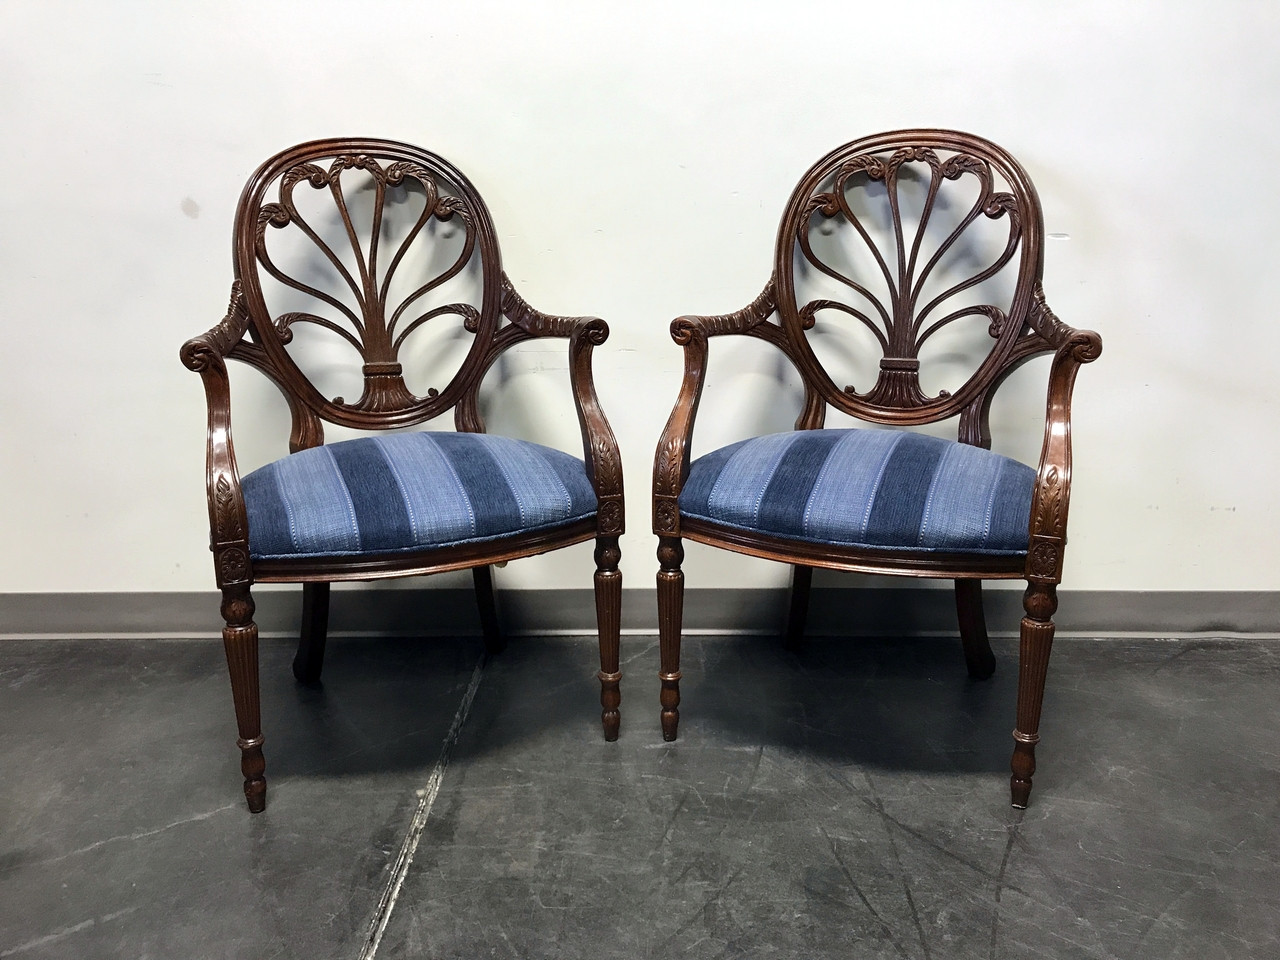 SOLD OUT HICKORY CHAIR Anthemion Fauteuil Mahogany Arm Chairs